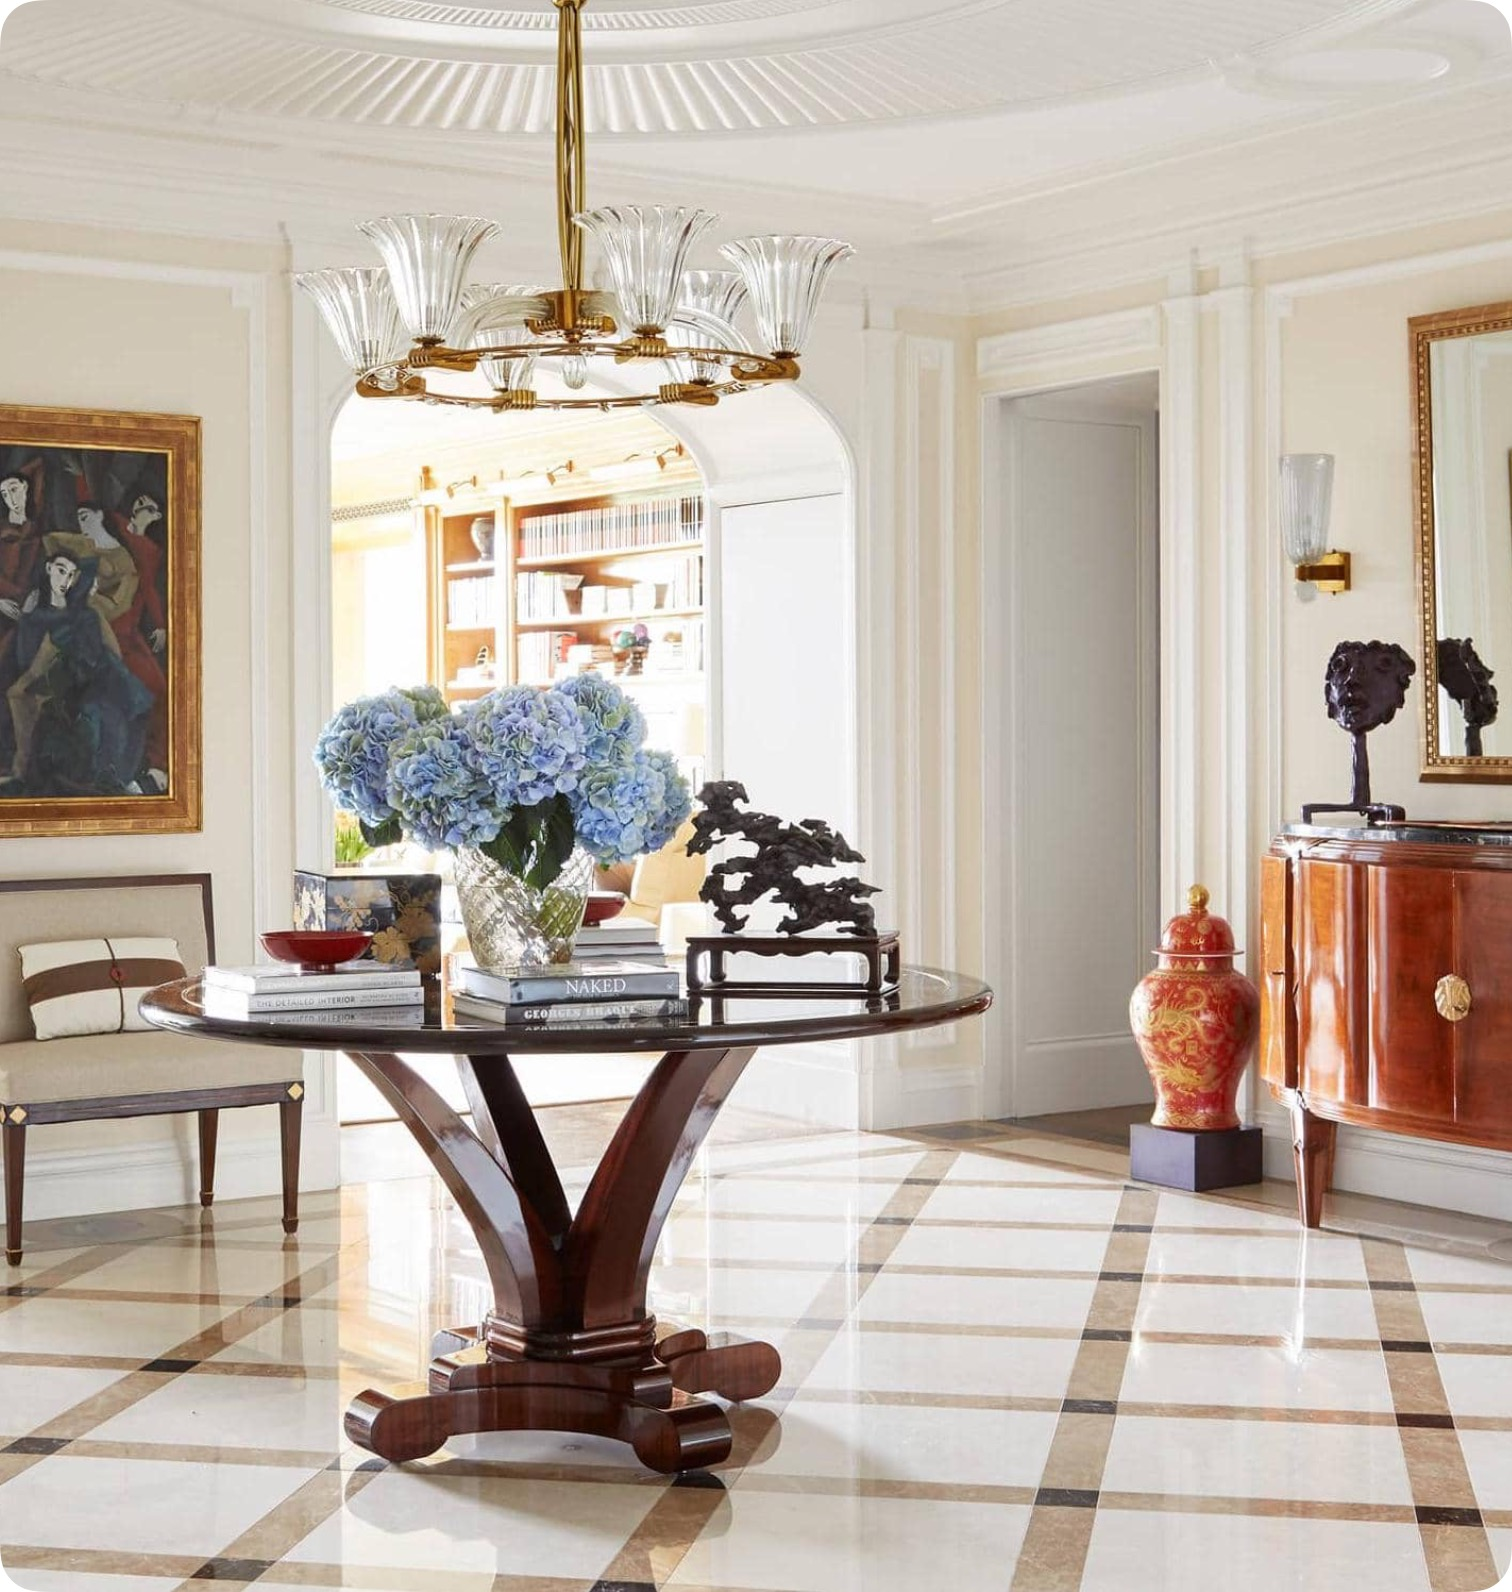 Splendid Sass  ROOM OF THE DAY  DESIGNER ELLIE CULLMAN Design by Ellie Cullman